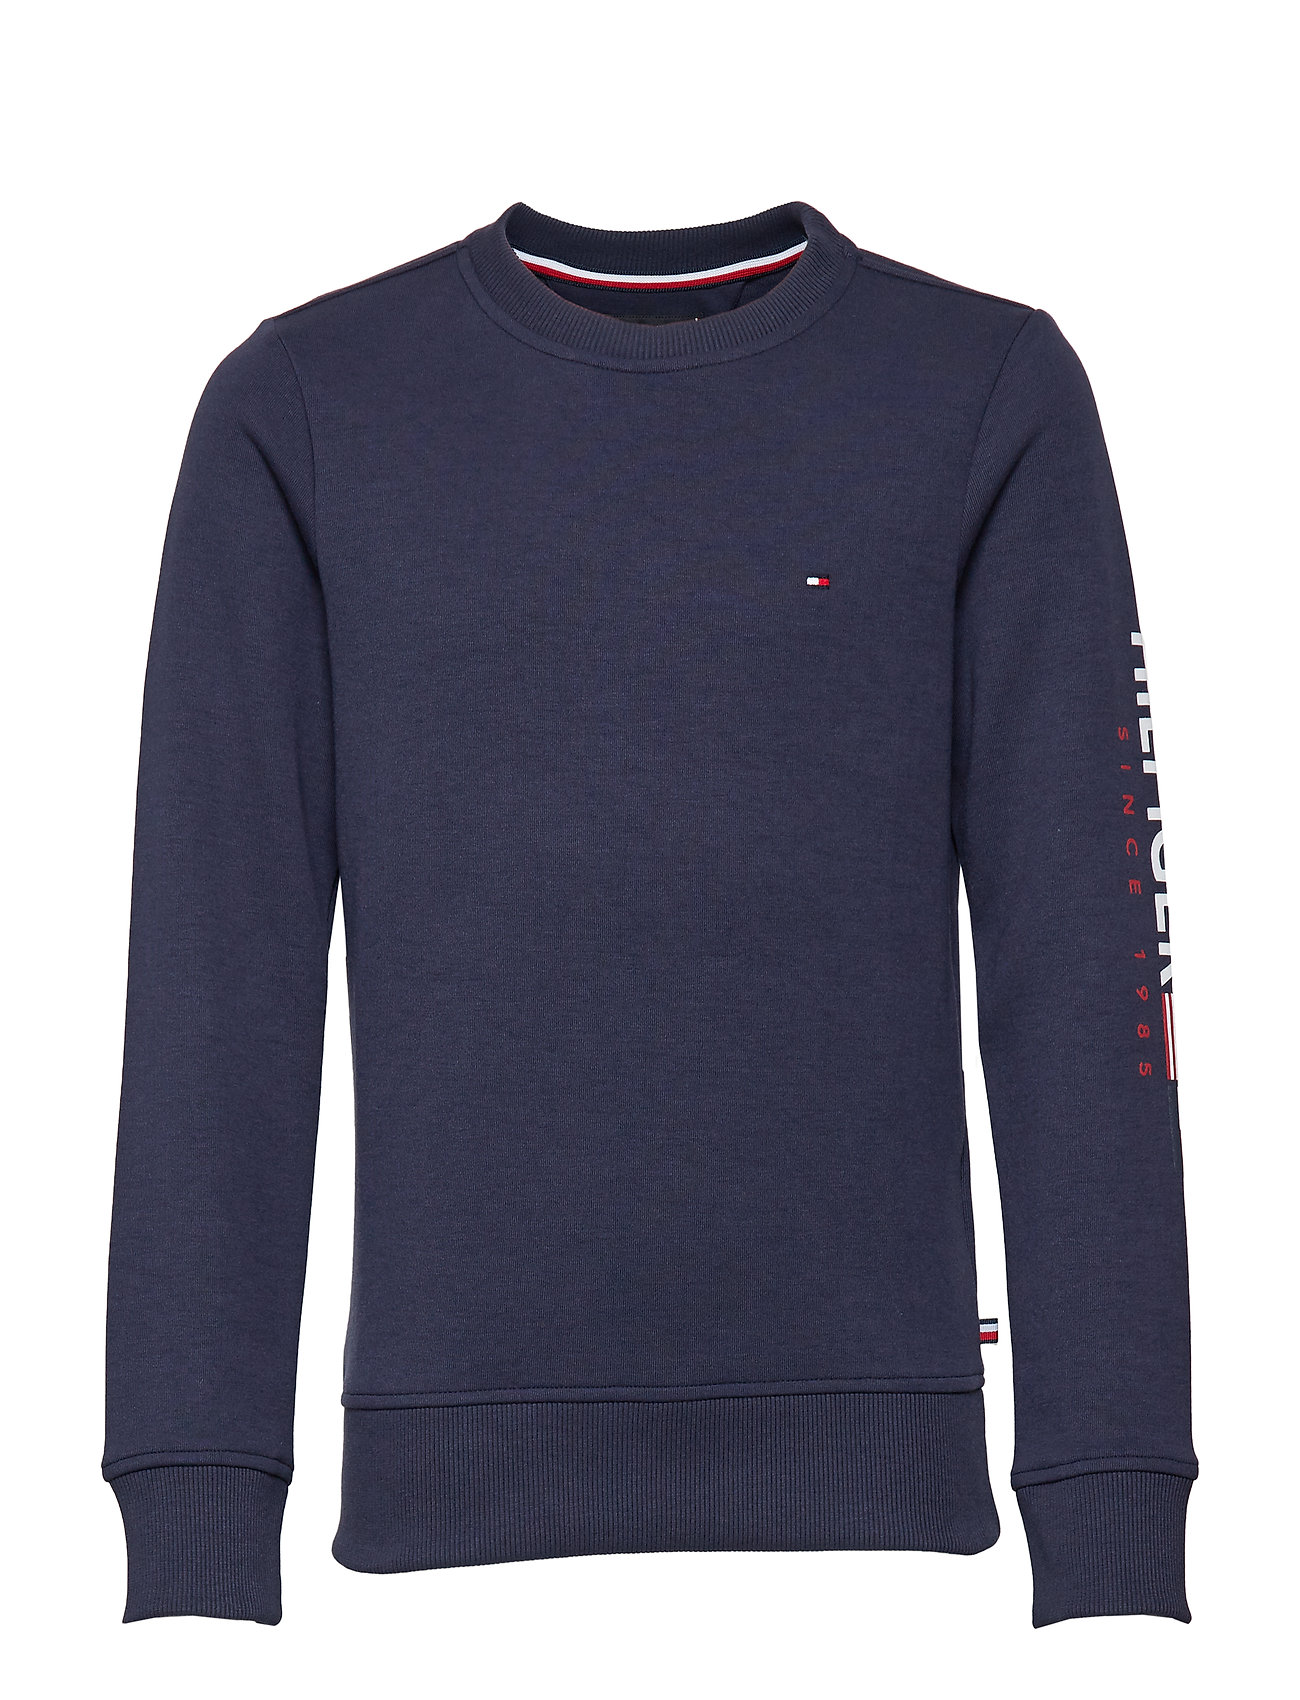 Tommy Hilfiger FLAGS INTERLOCK CREW - BLACK IRIS